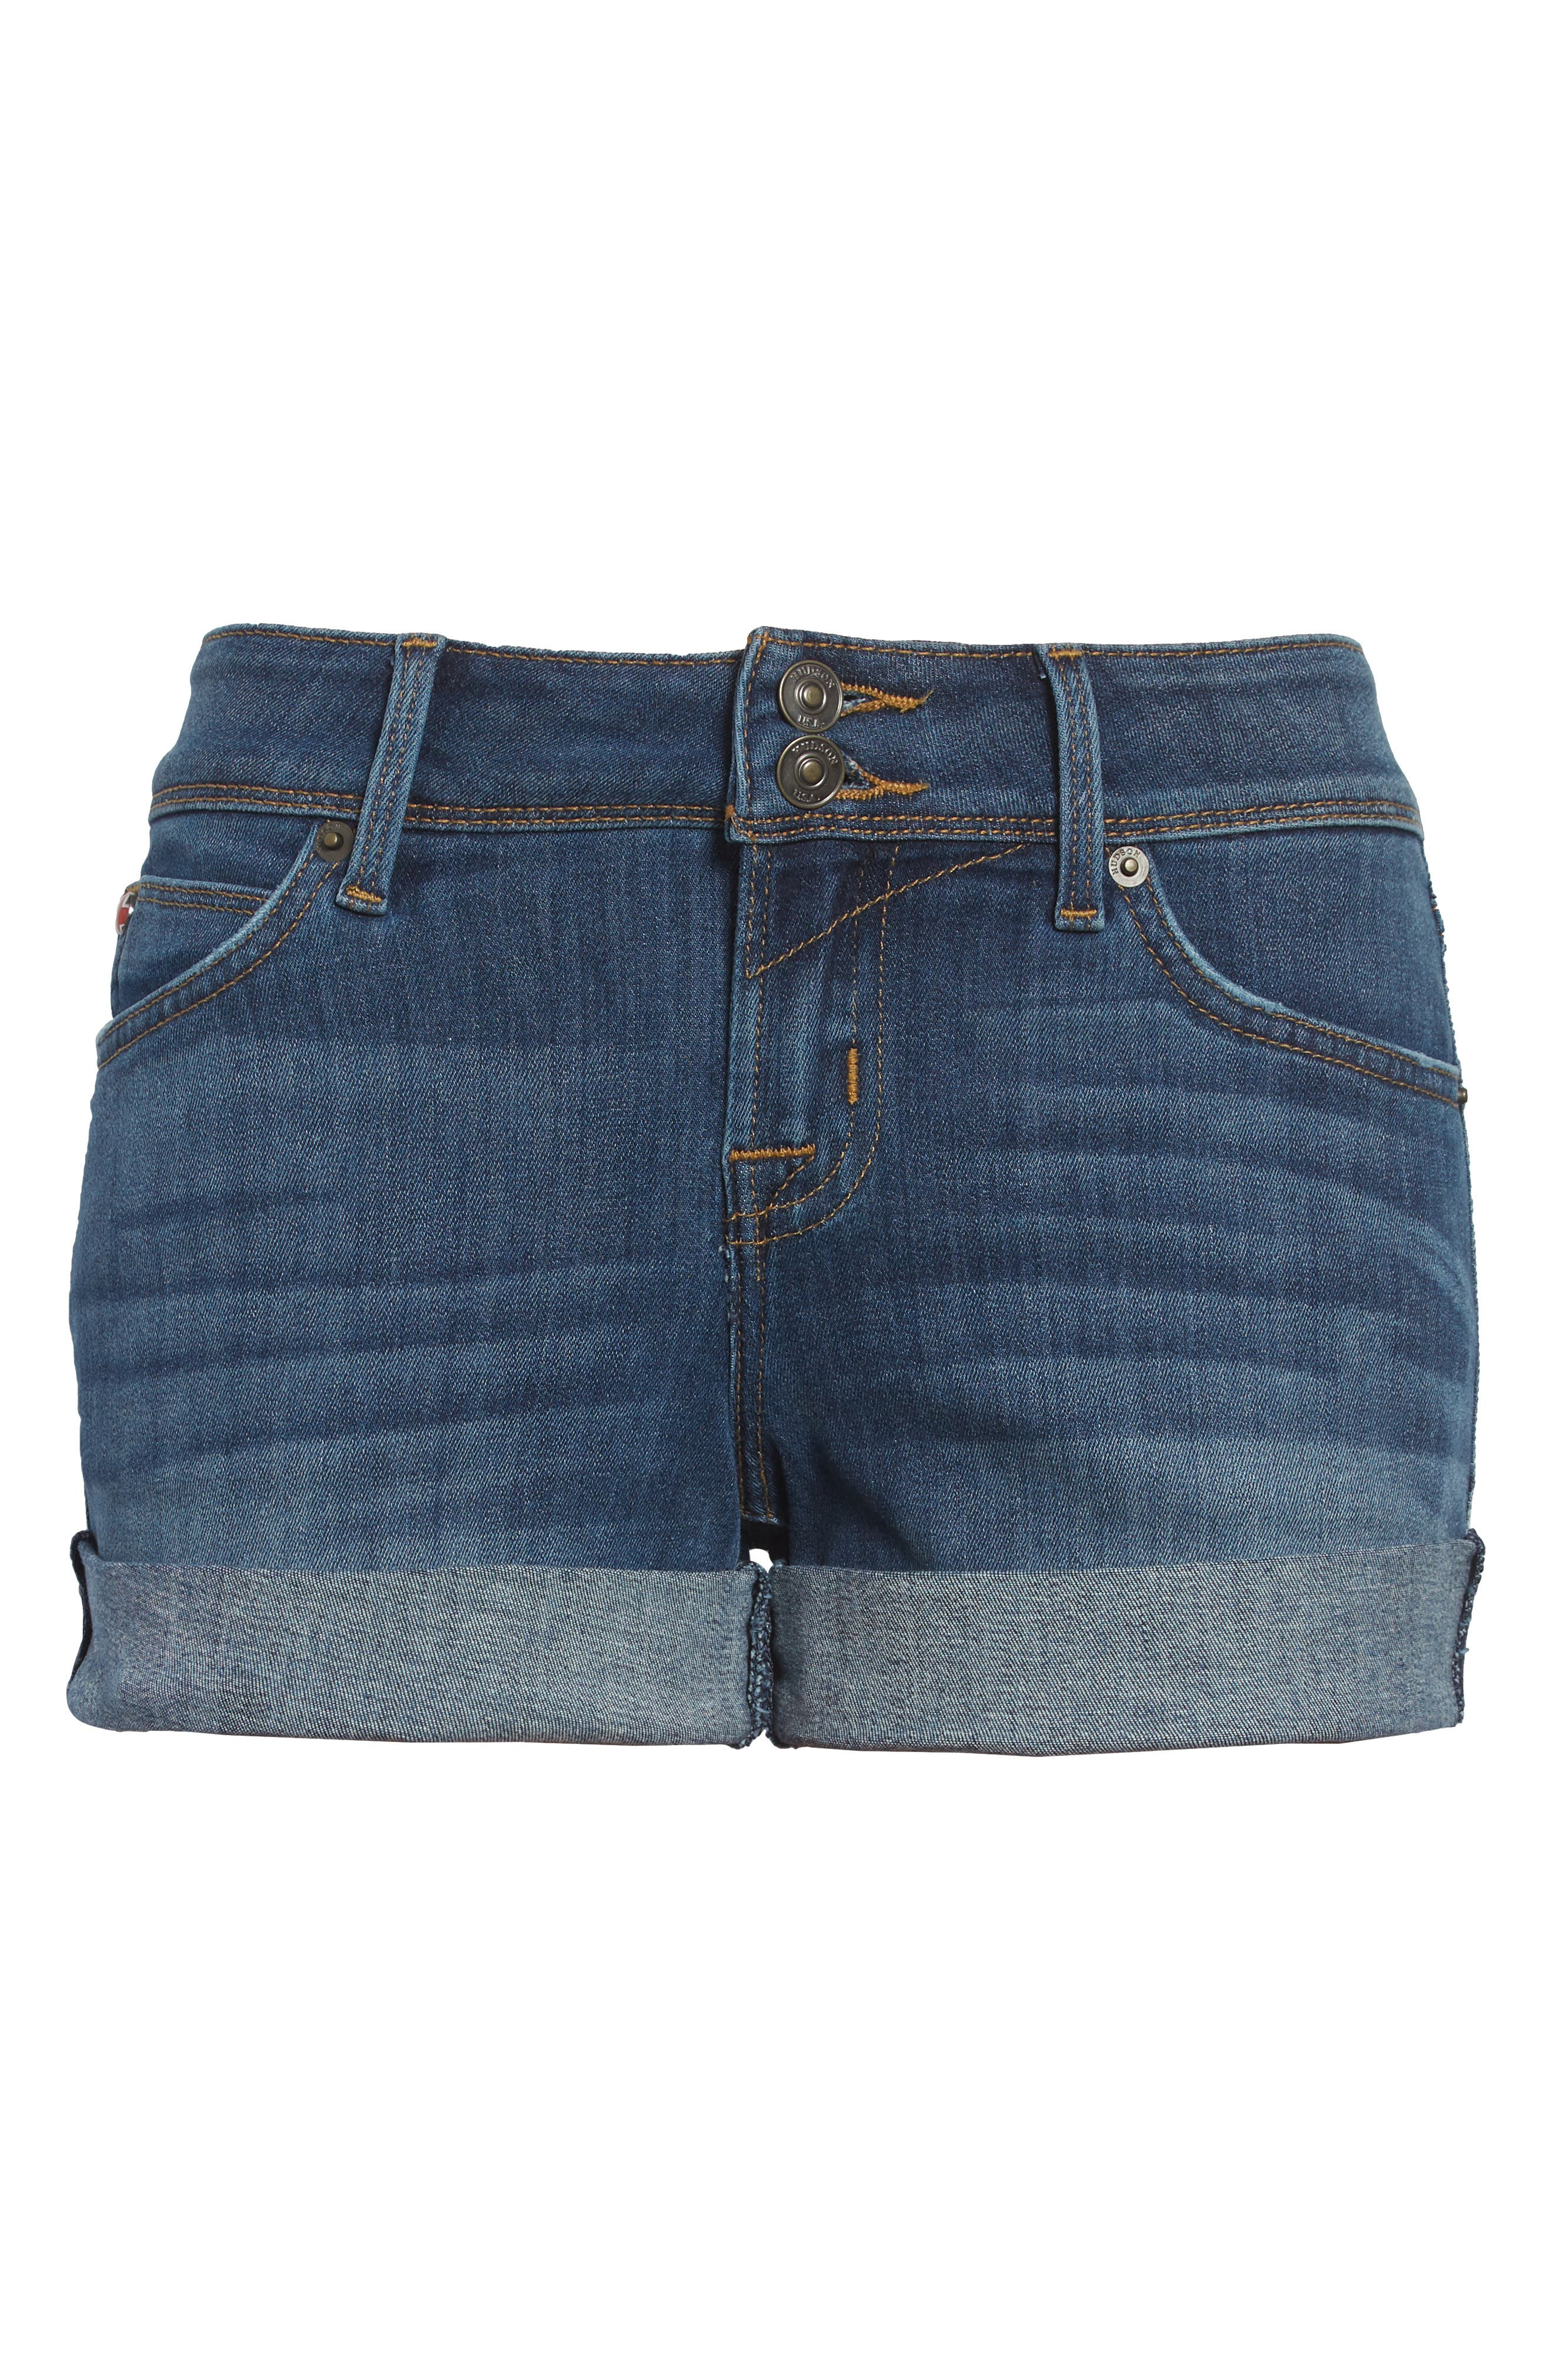 'Croxley' Cuffed Denim Shorts,                             Alternate thumbnail 7, color,